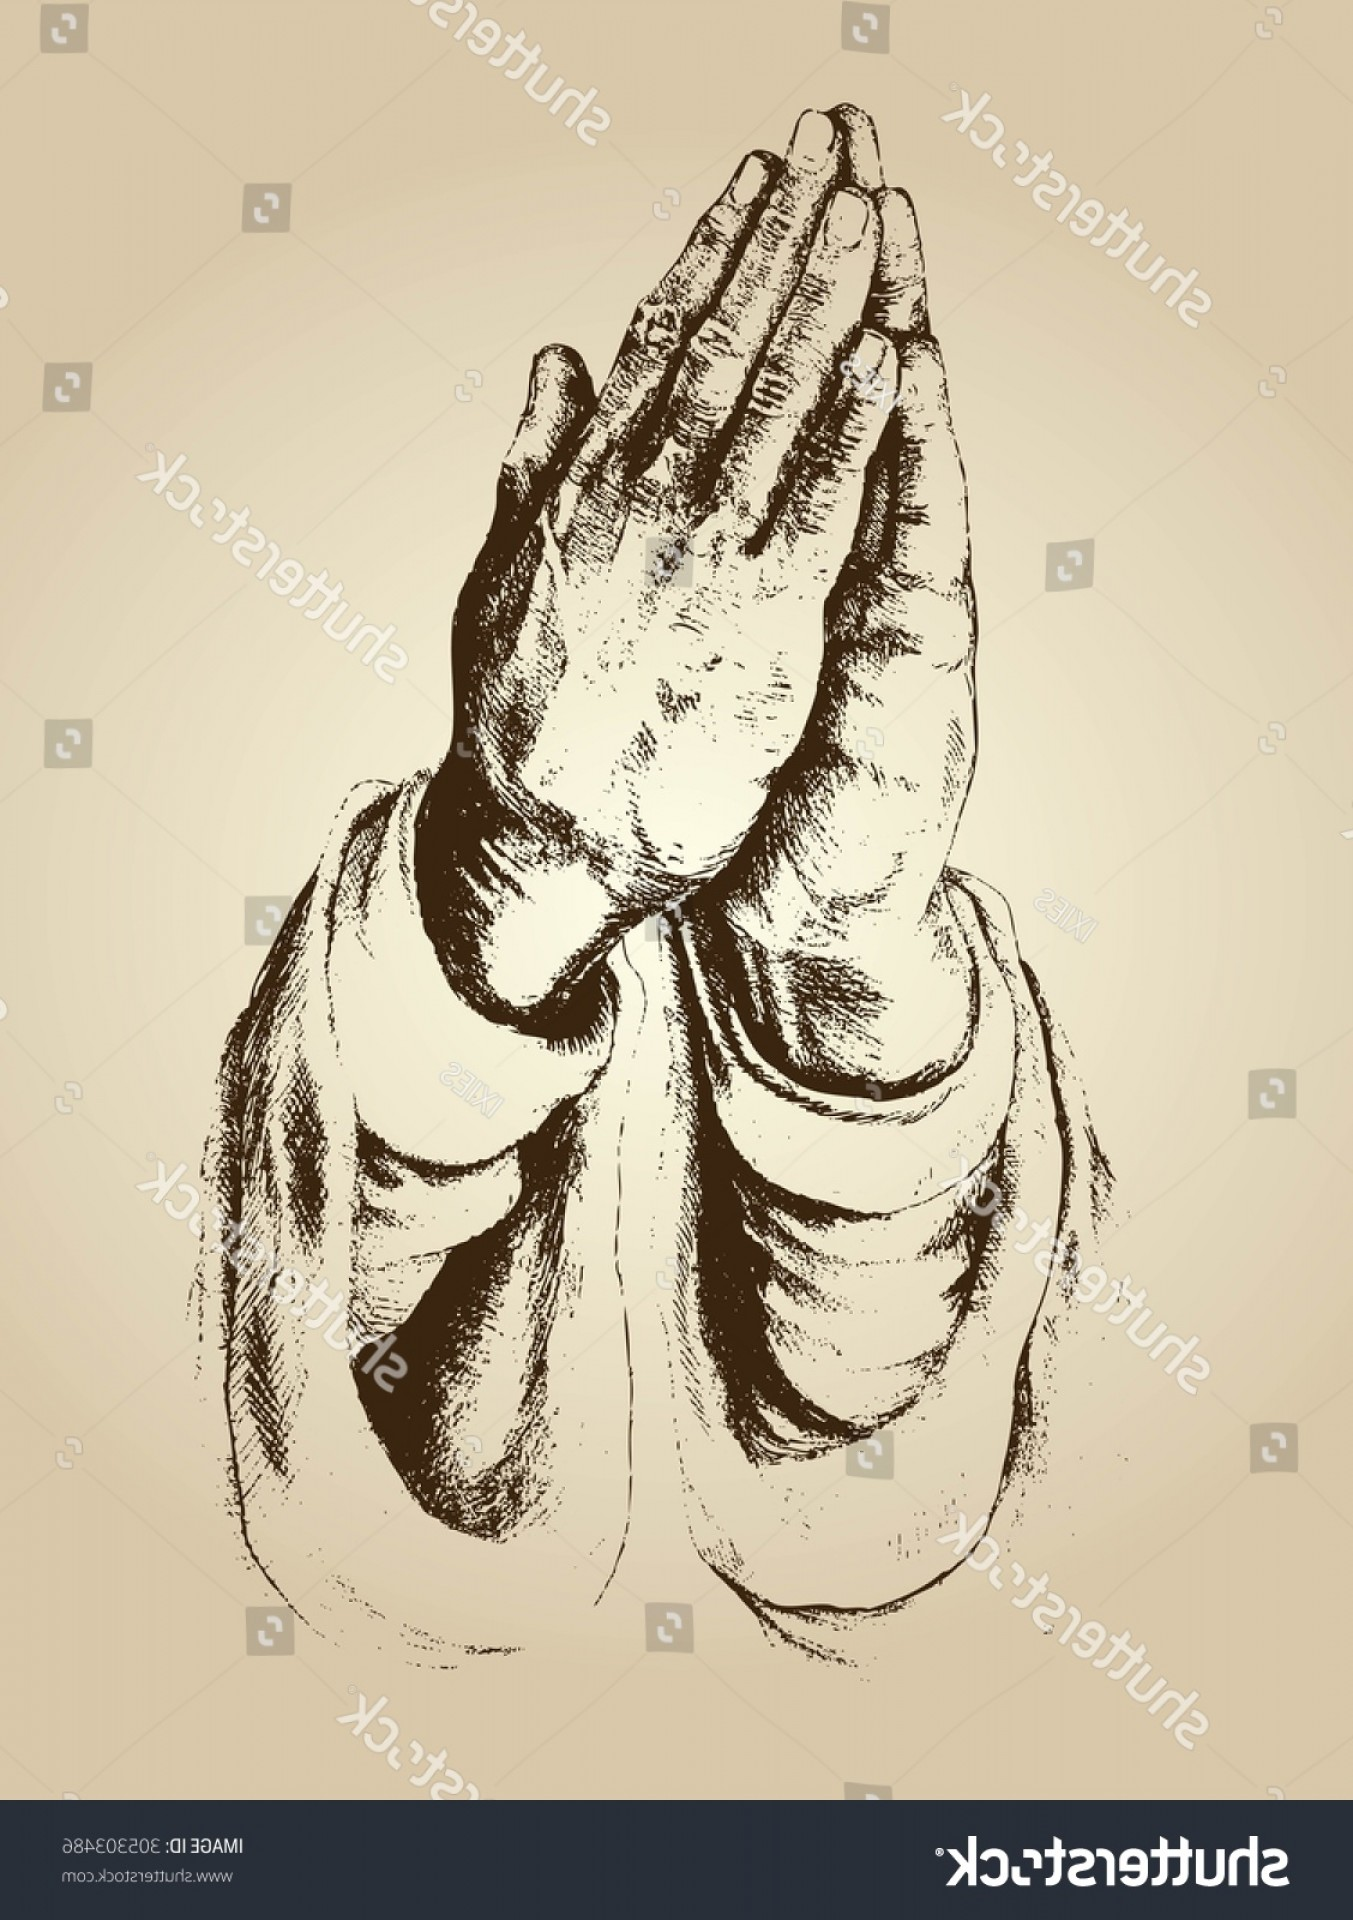 Praying Hands Vectors Shutterstock: Illustration Vector Praying Hands Faith